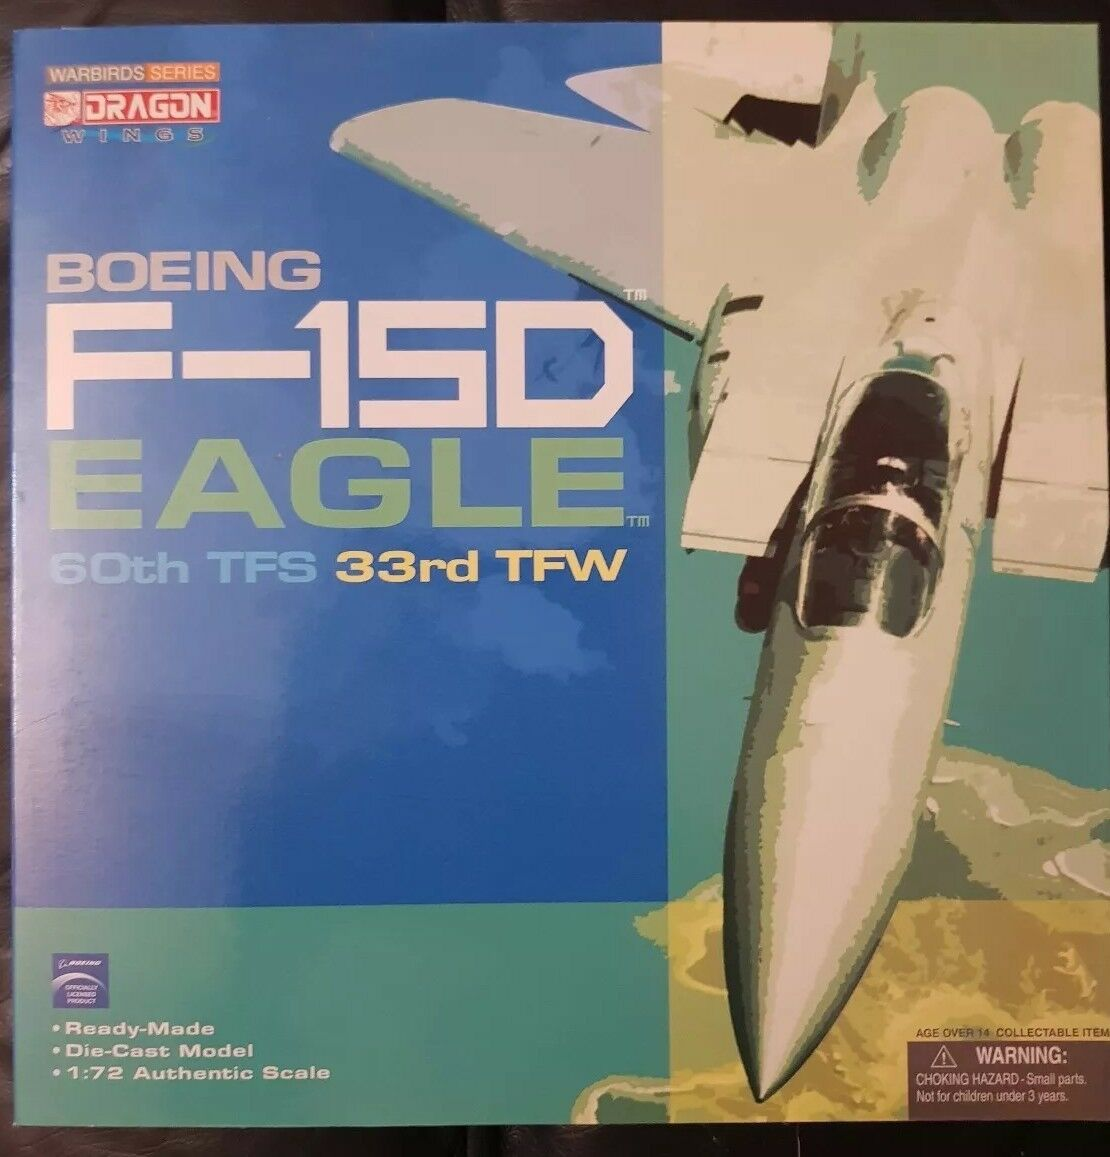 Dragon Wings WARBIRDS série Boeing F-15D Strike Eagle 60th TFS 33rd TFW 50145